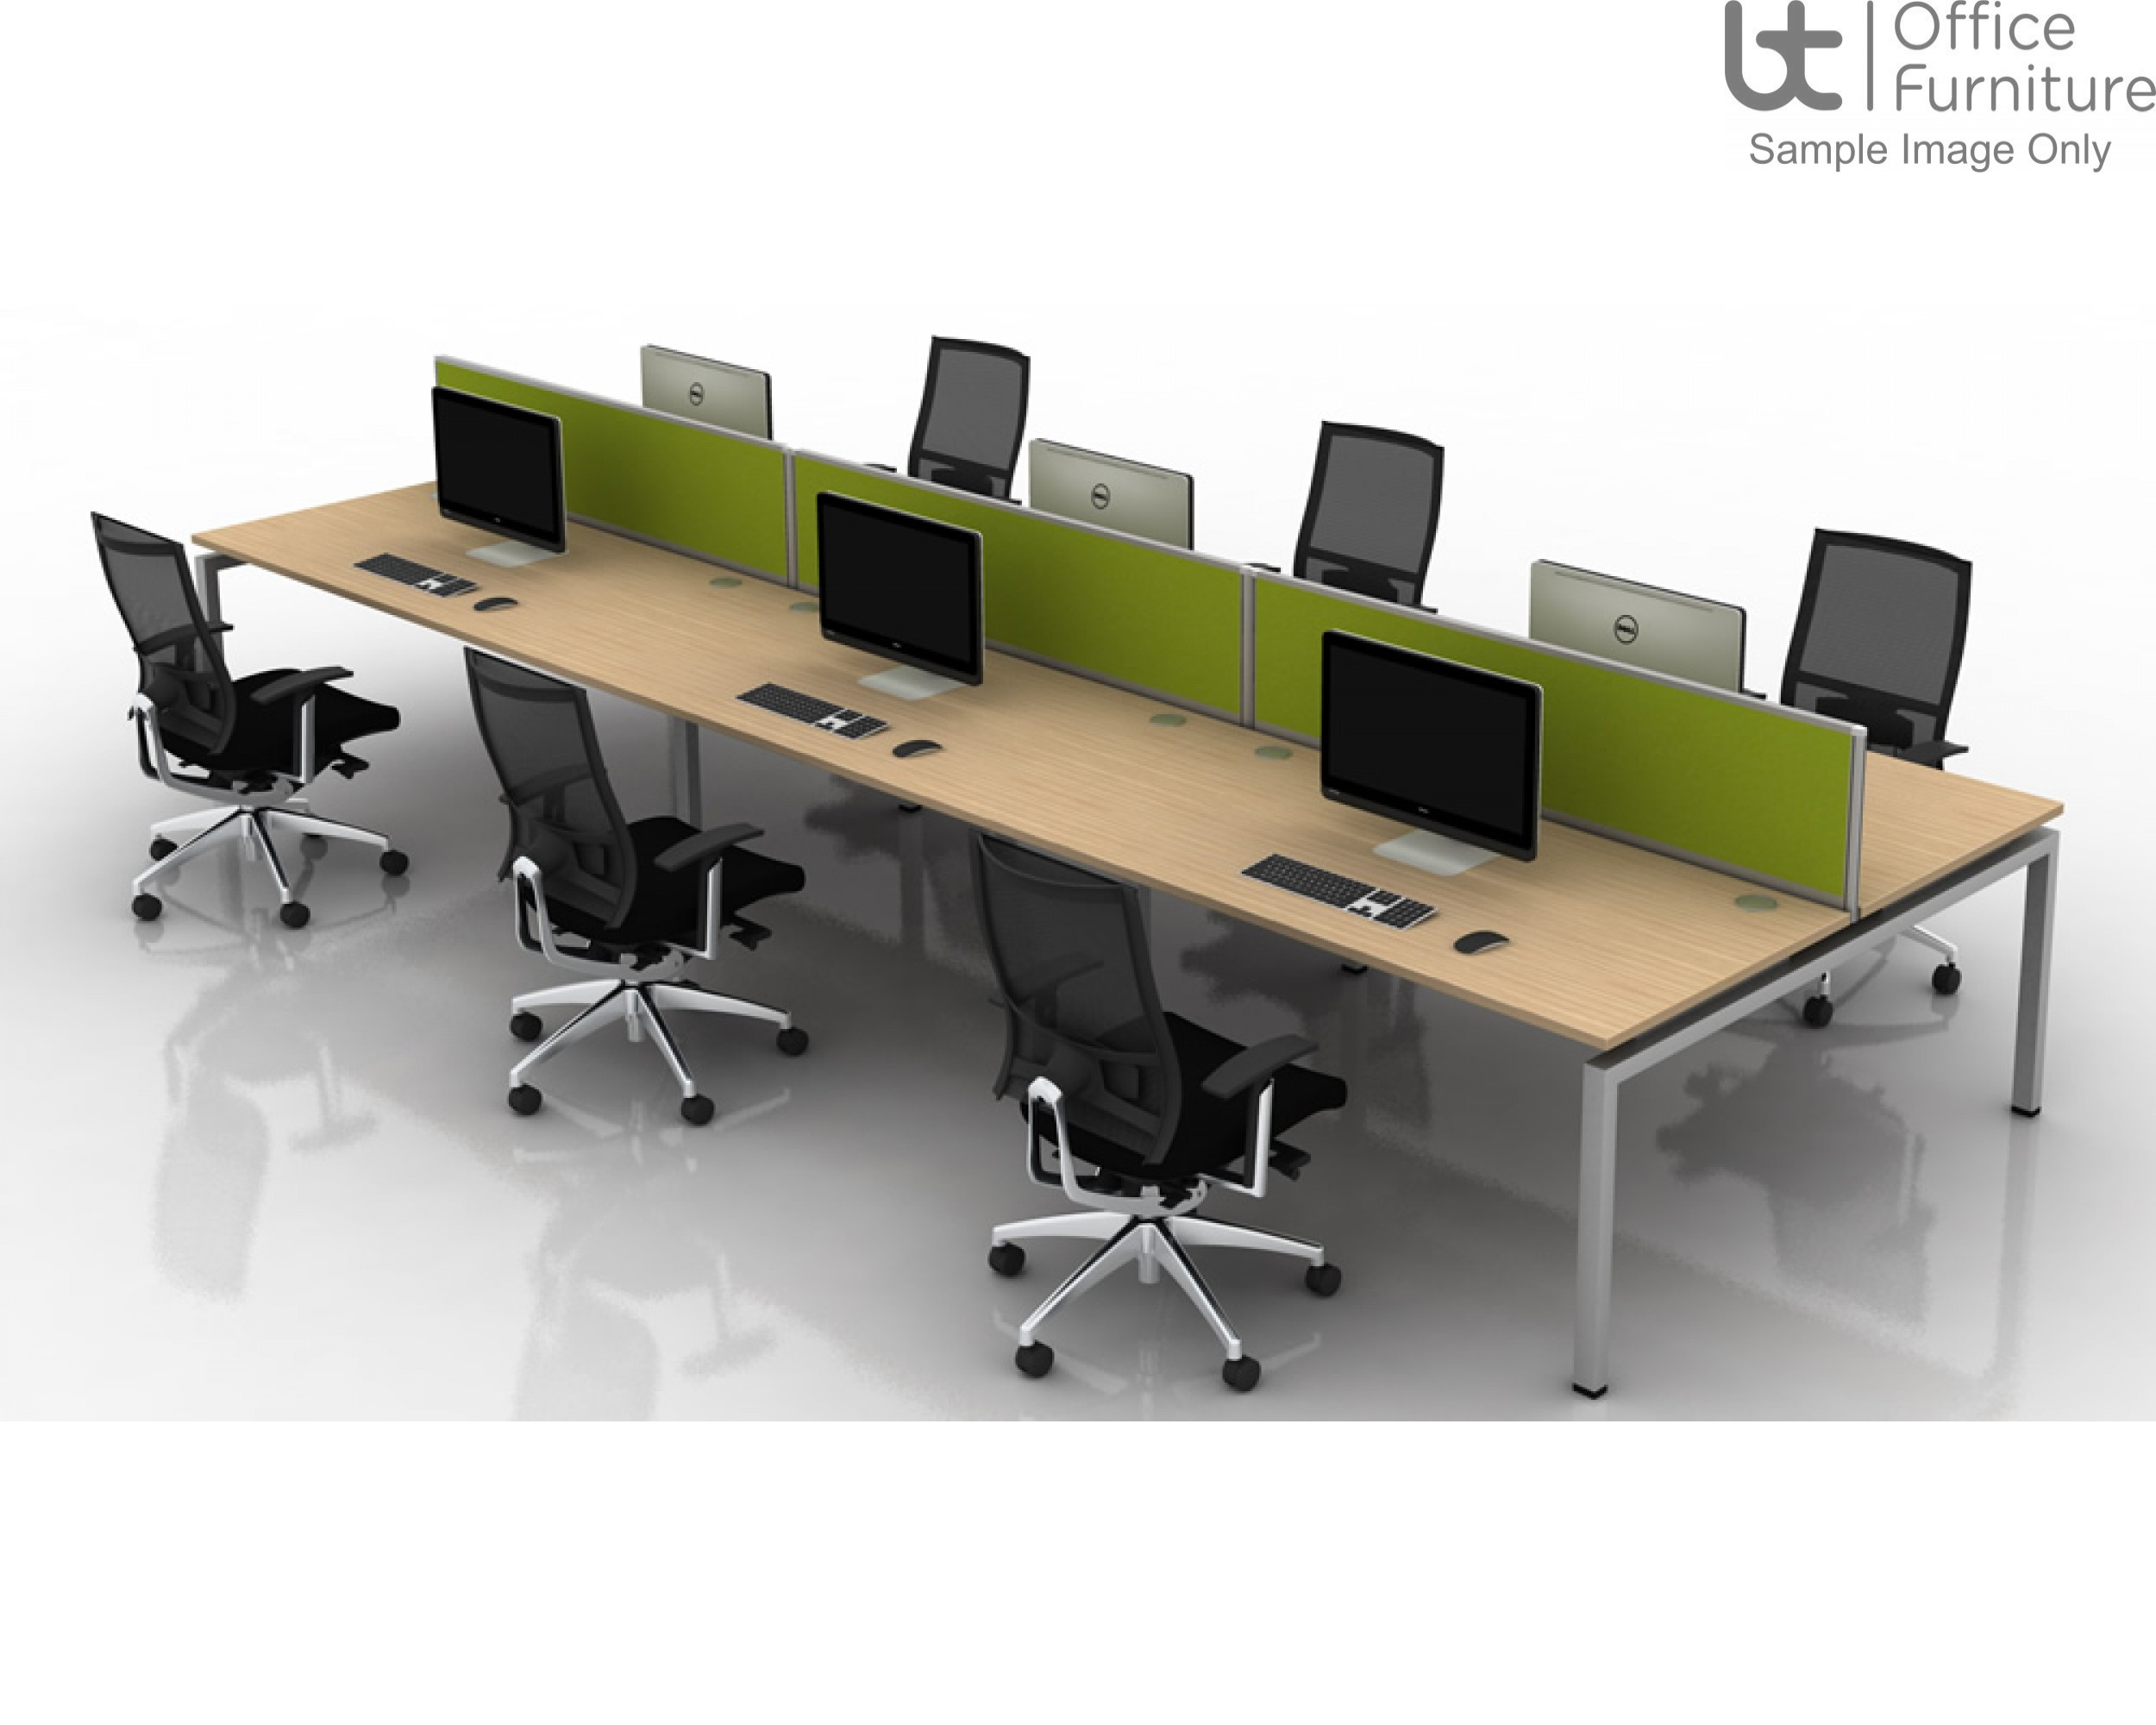 Soho2 Crescent Desk With Pedestal Bracket 800D x 600Dmm - Right Hand Illustrated